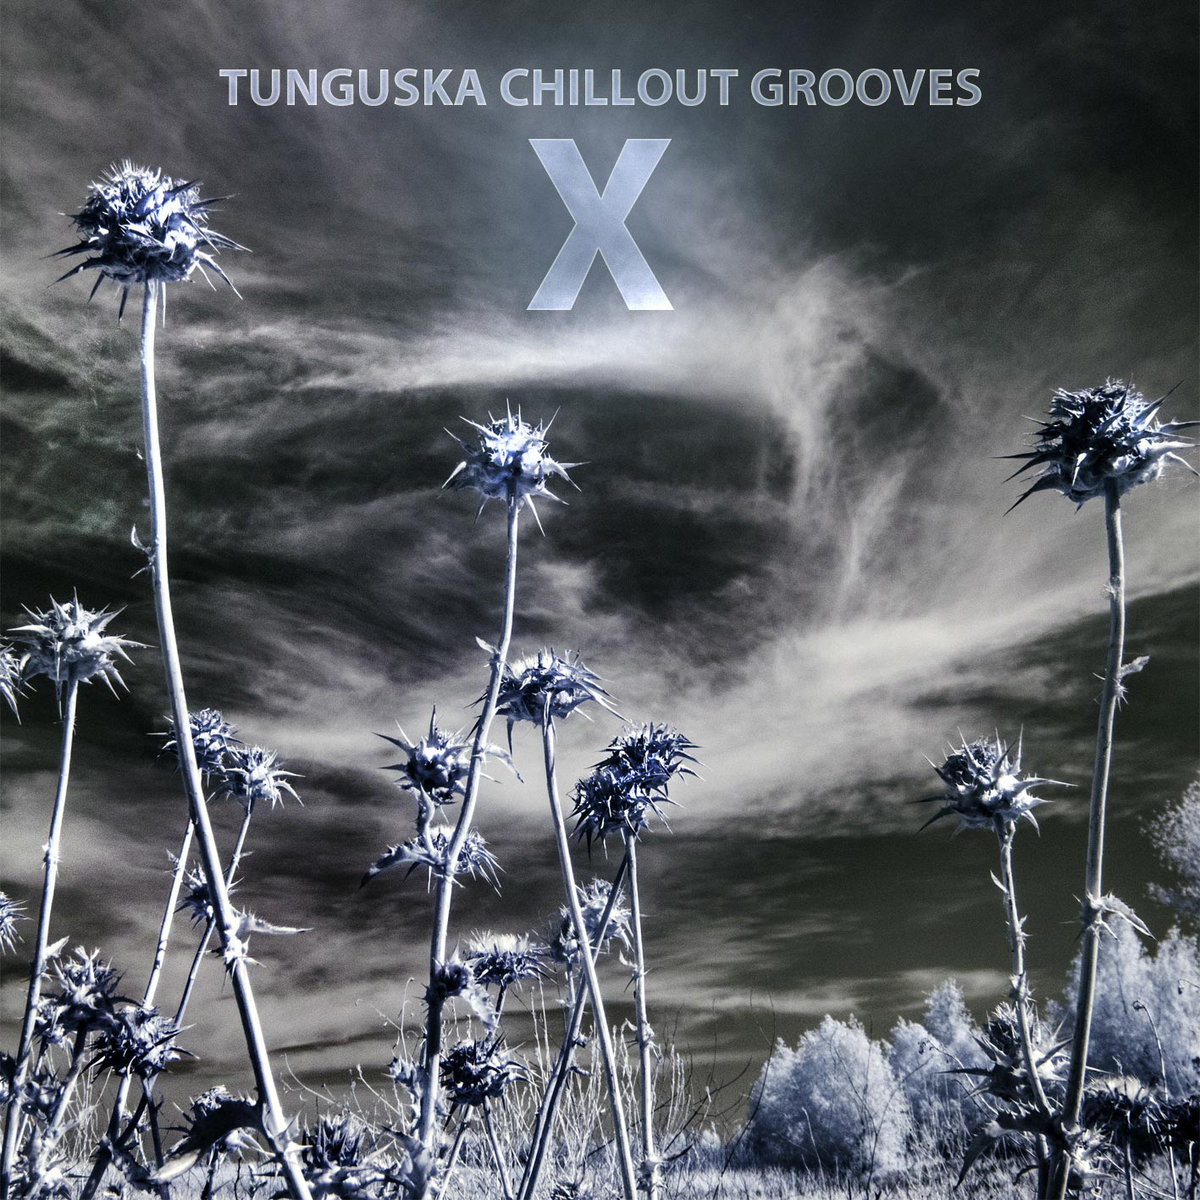 Alloise - Love Me or Leave Me (Max Loginov Remix) @ 'Tunguska Chillout Grooves - Volume 10' album (electronic, ambient)